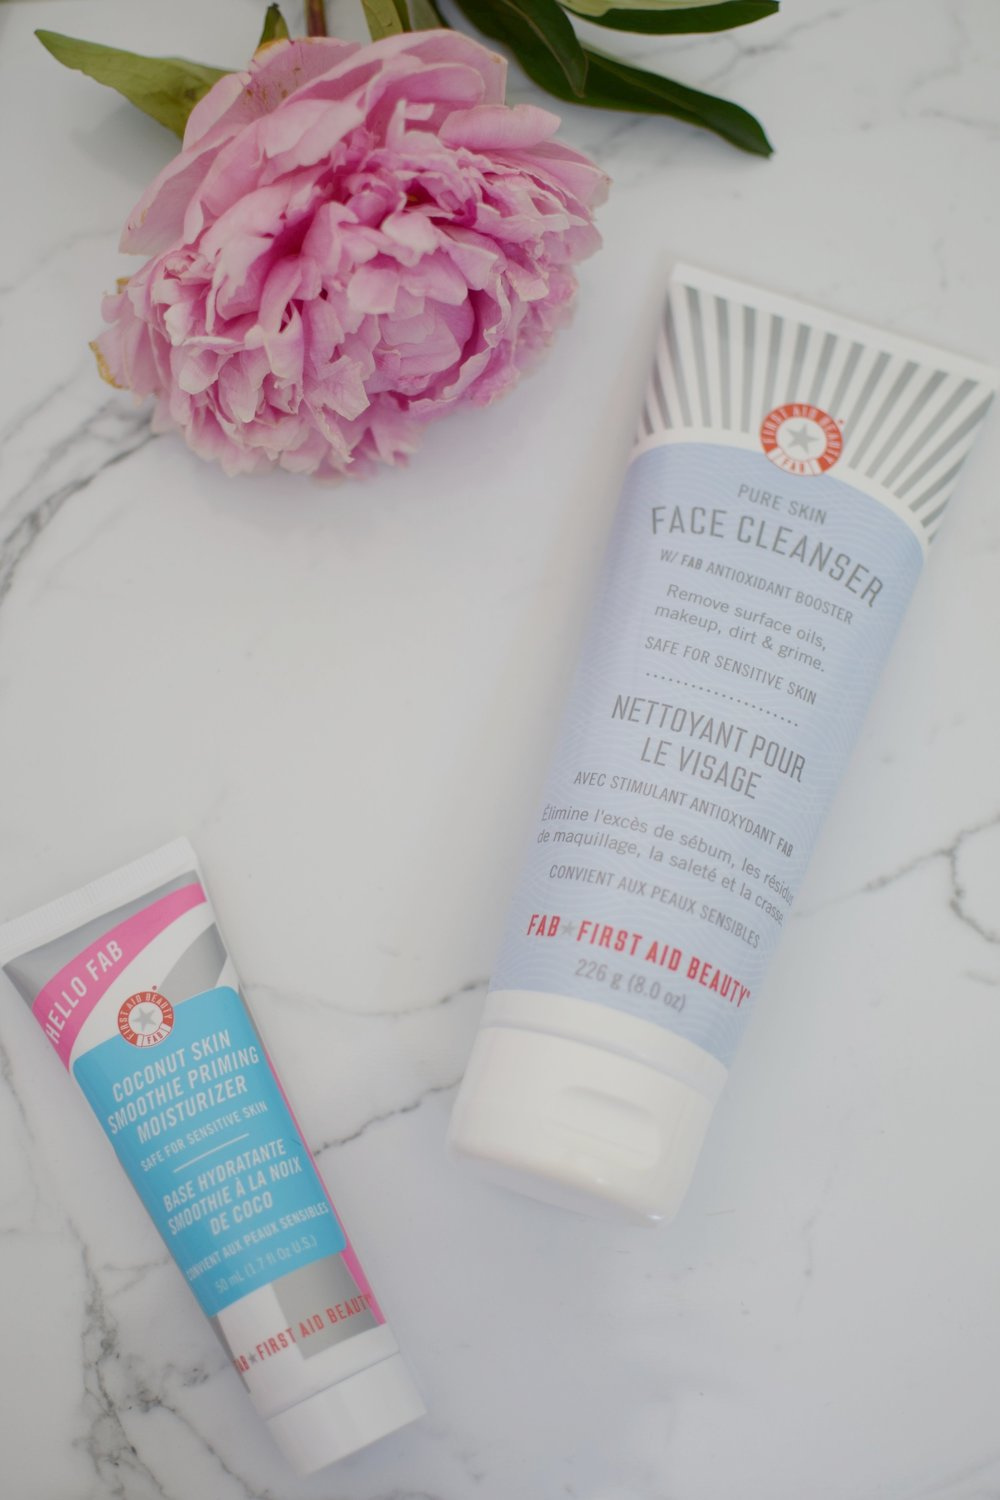 first aid beauty face cleanser & coconut skin smoothie priming moisturizer review